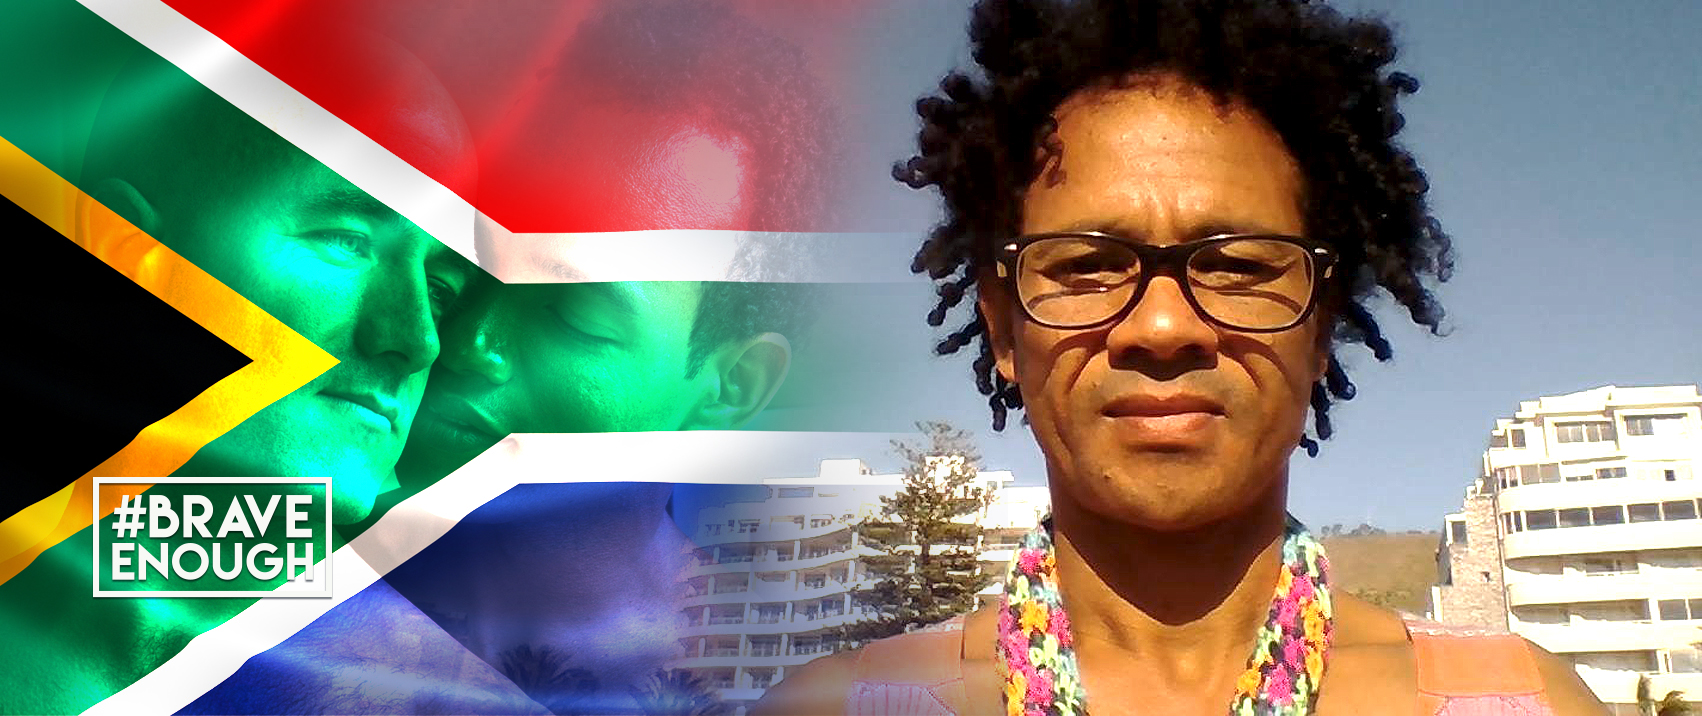 Brave Story:  Godfrey Talks About Being Gay In Post-apartheid S.A.